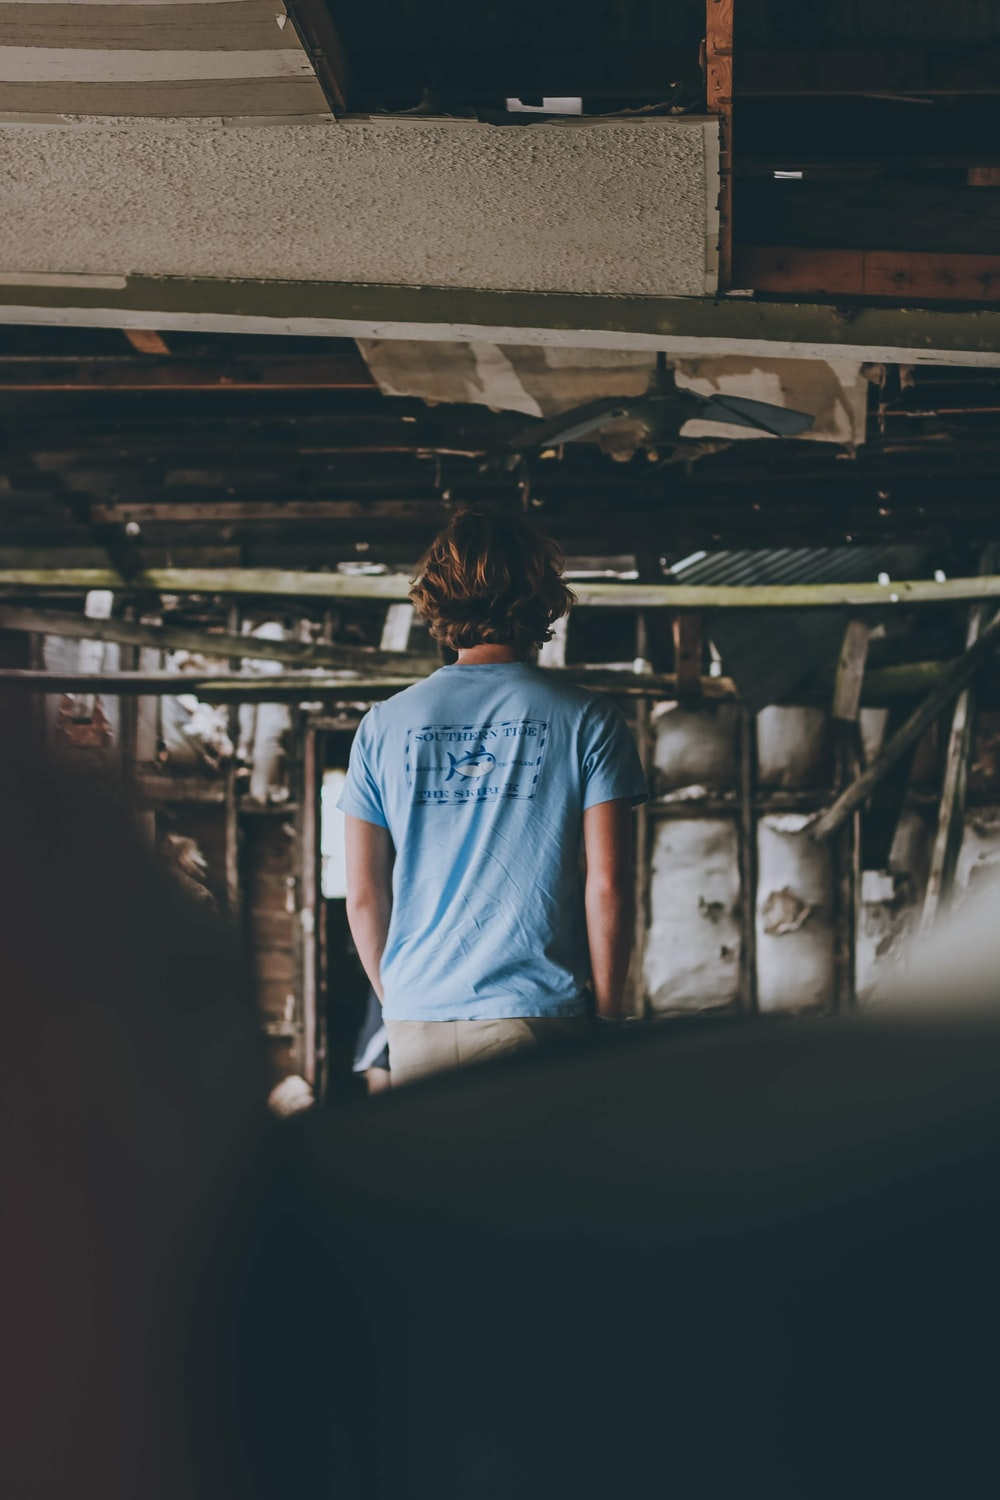 woman in blue t-shirt and blue denim jeans standing inside building